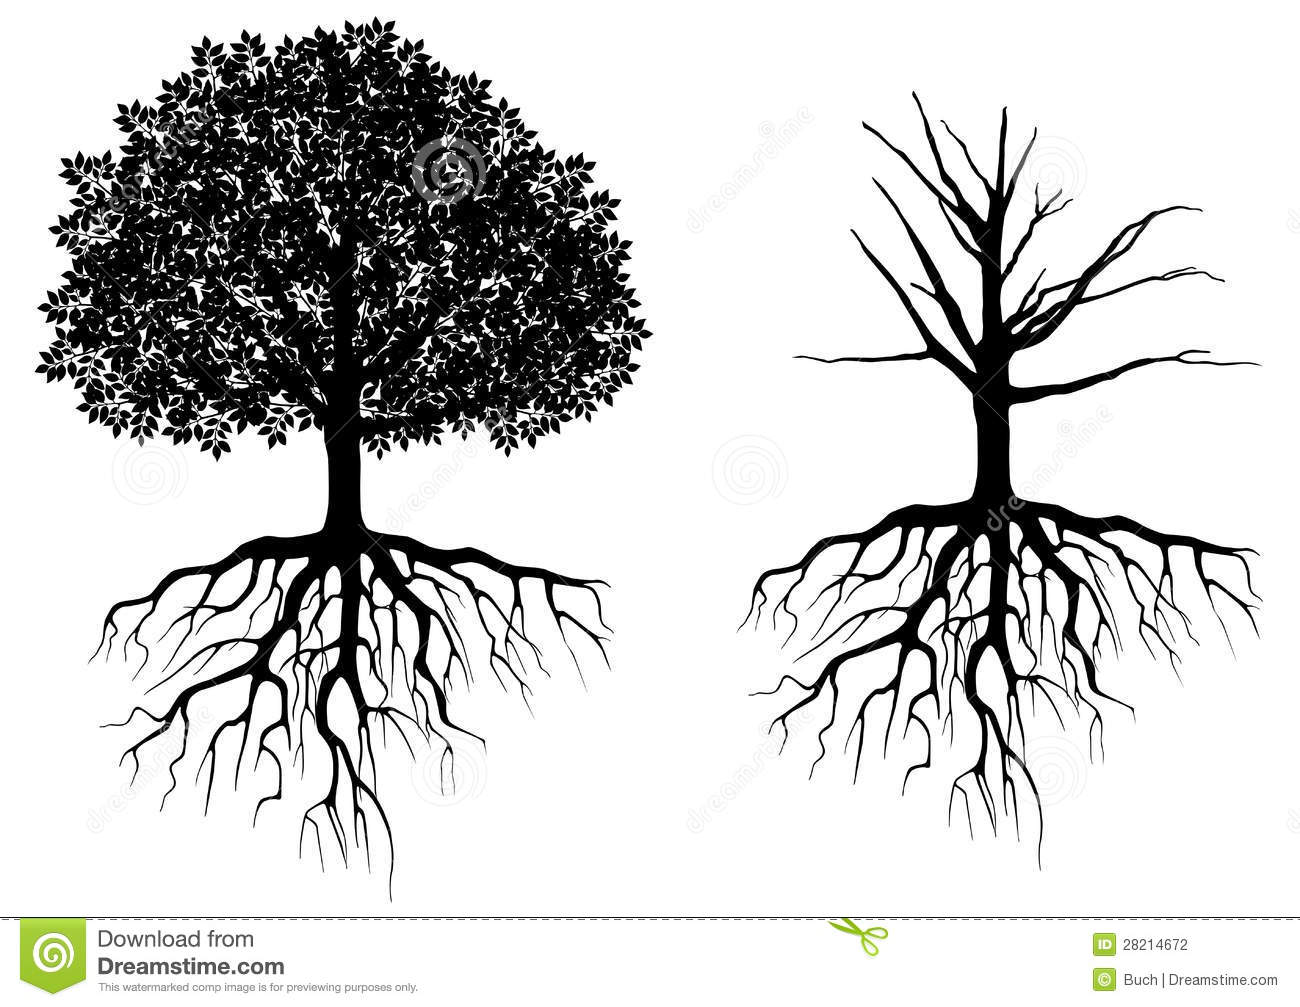 Tree with roots isolated on white. Vector illustration.